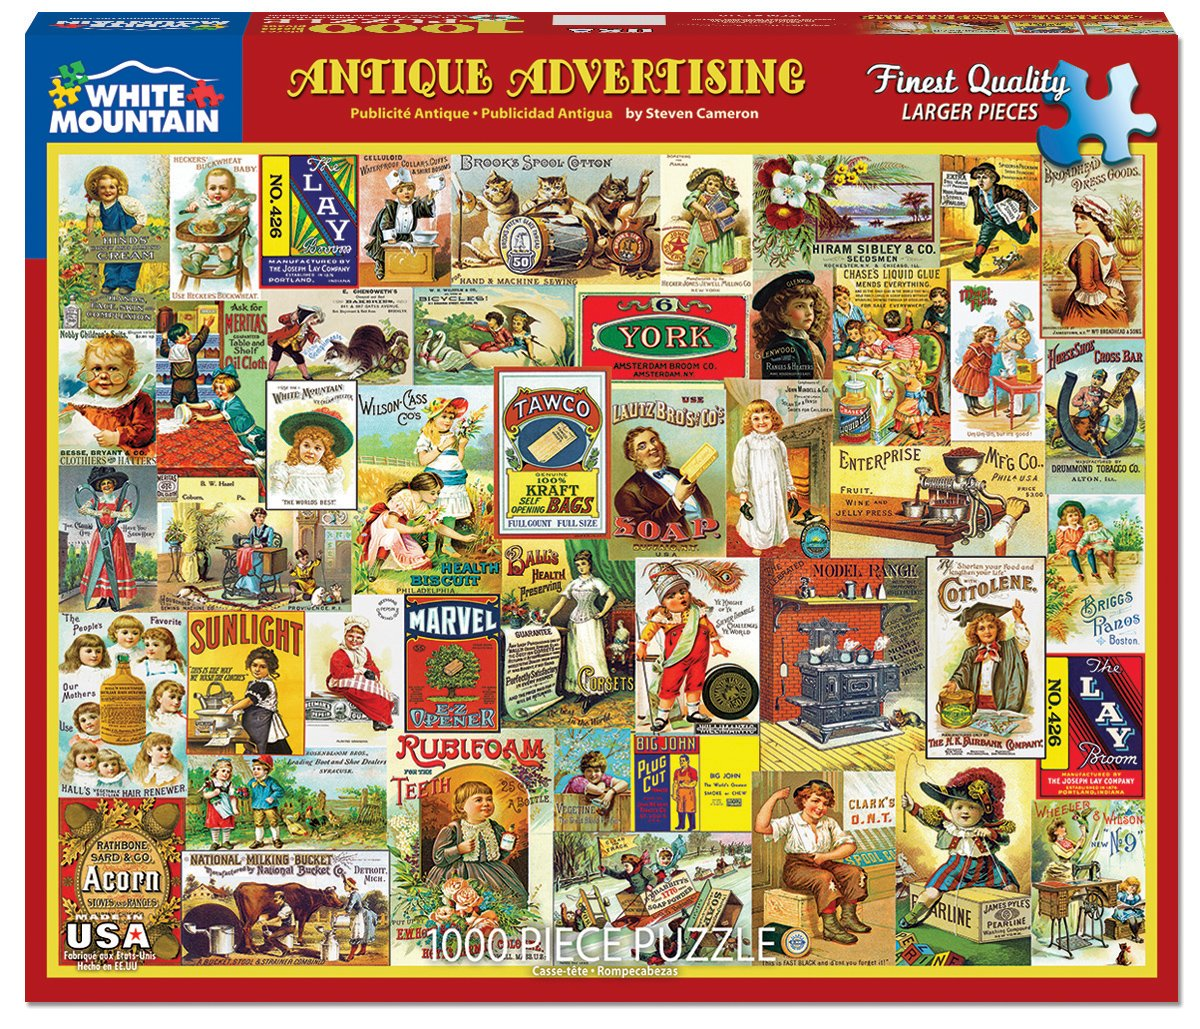 1000 Piece Jigsaw Puzzle Inc 1318 White Mountain Puzzles Antique Advertising